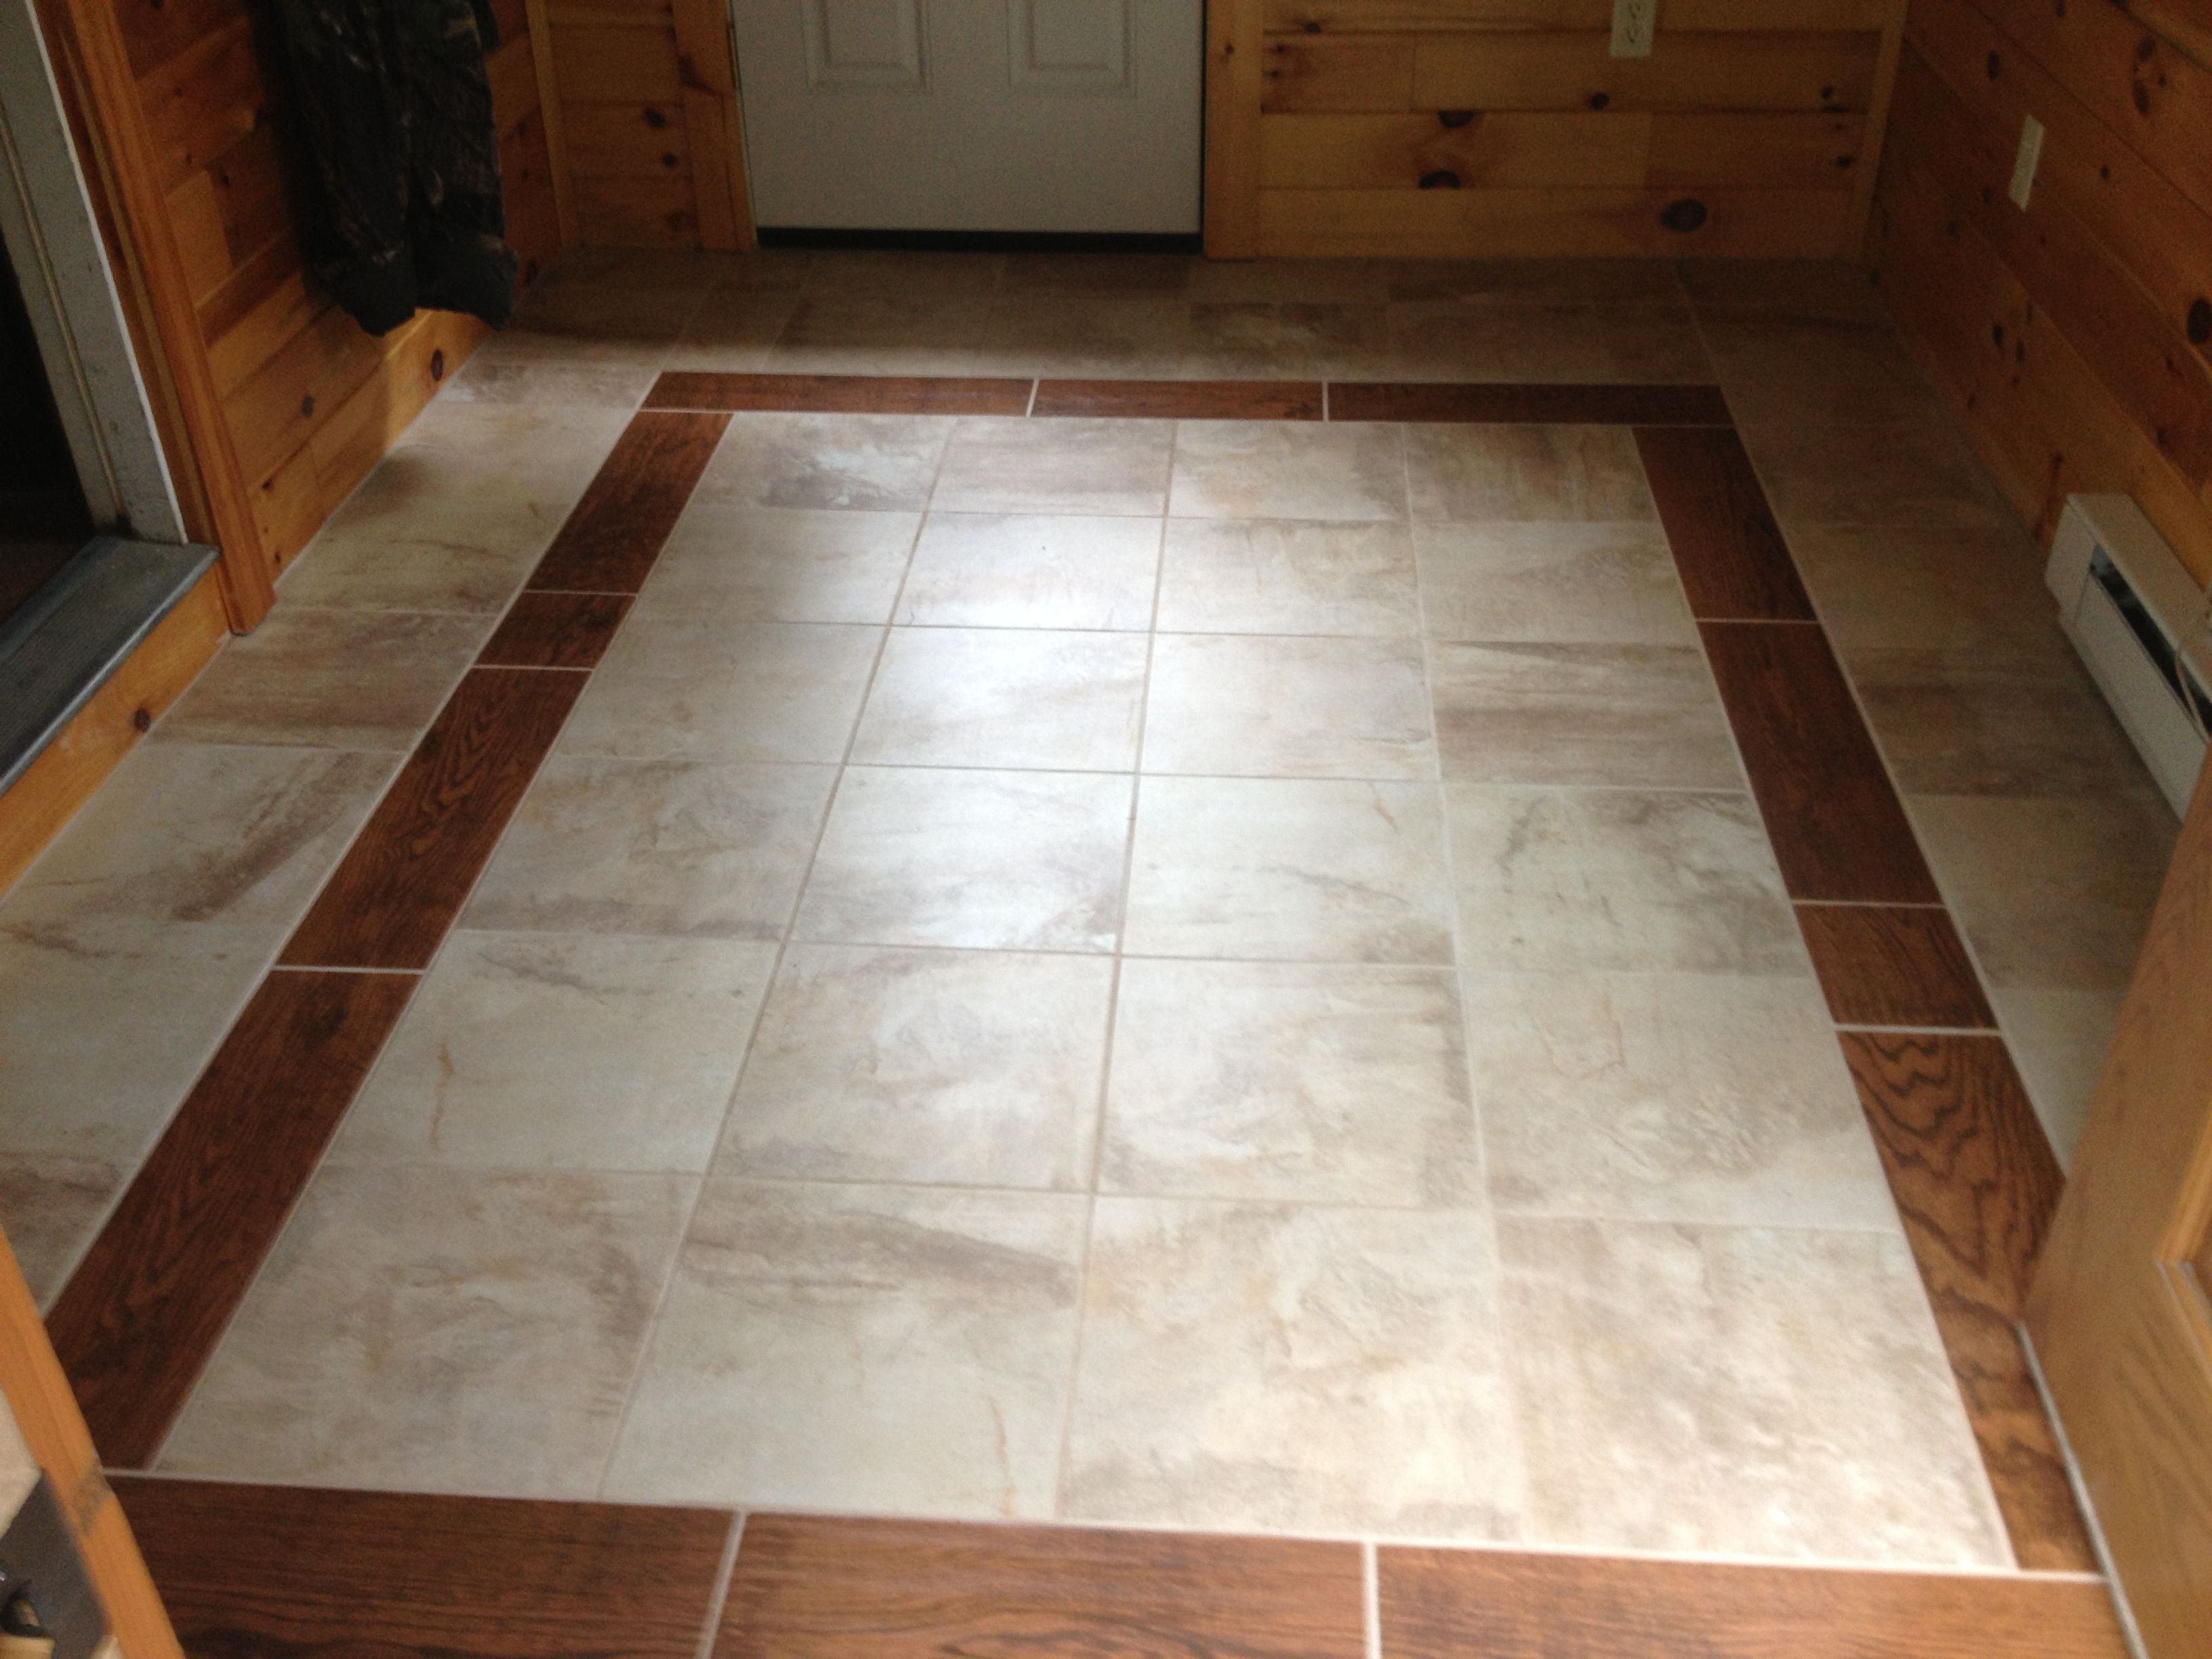 Mud Room Floor Wood Tile Border